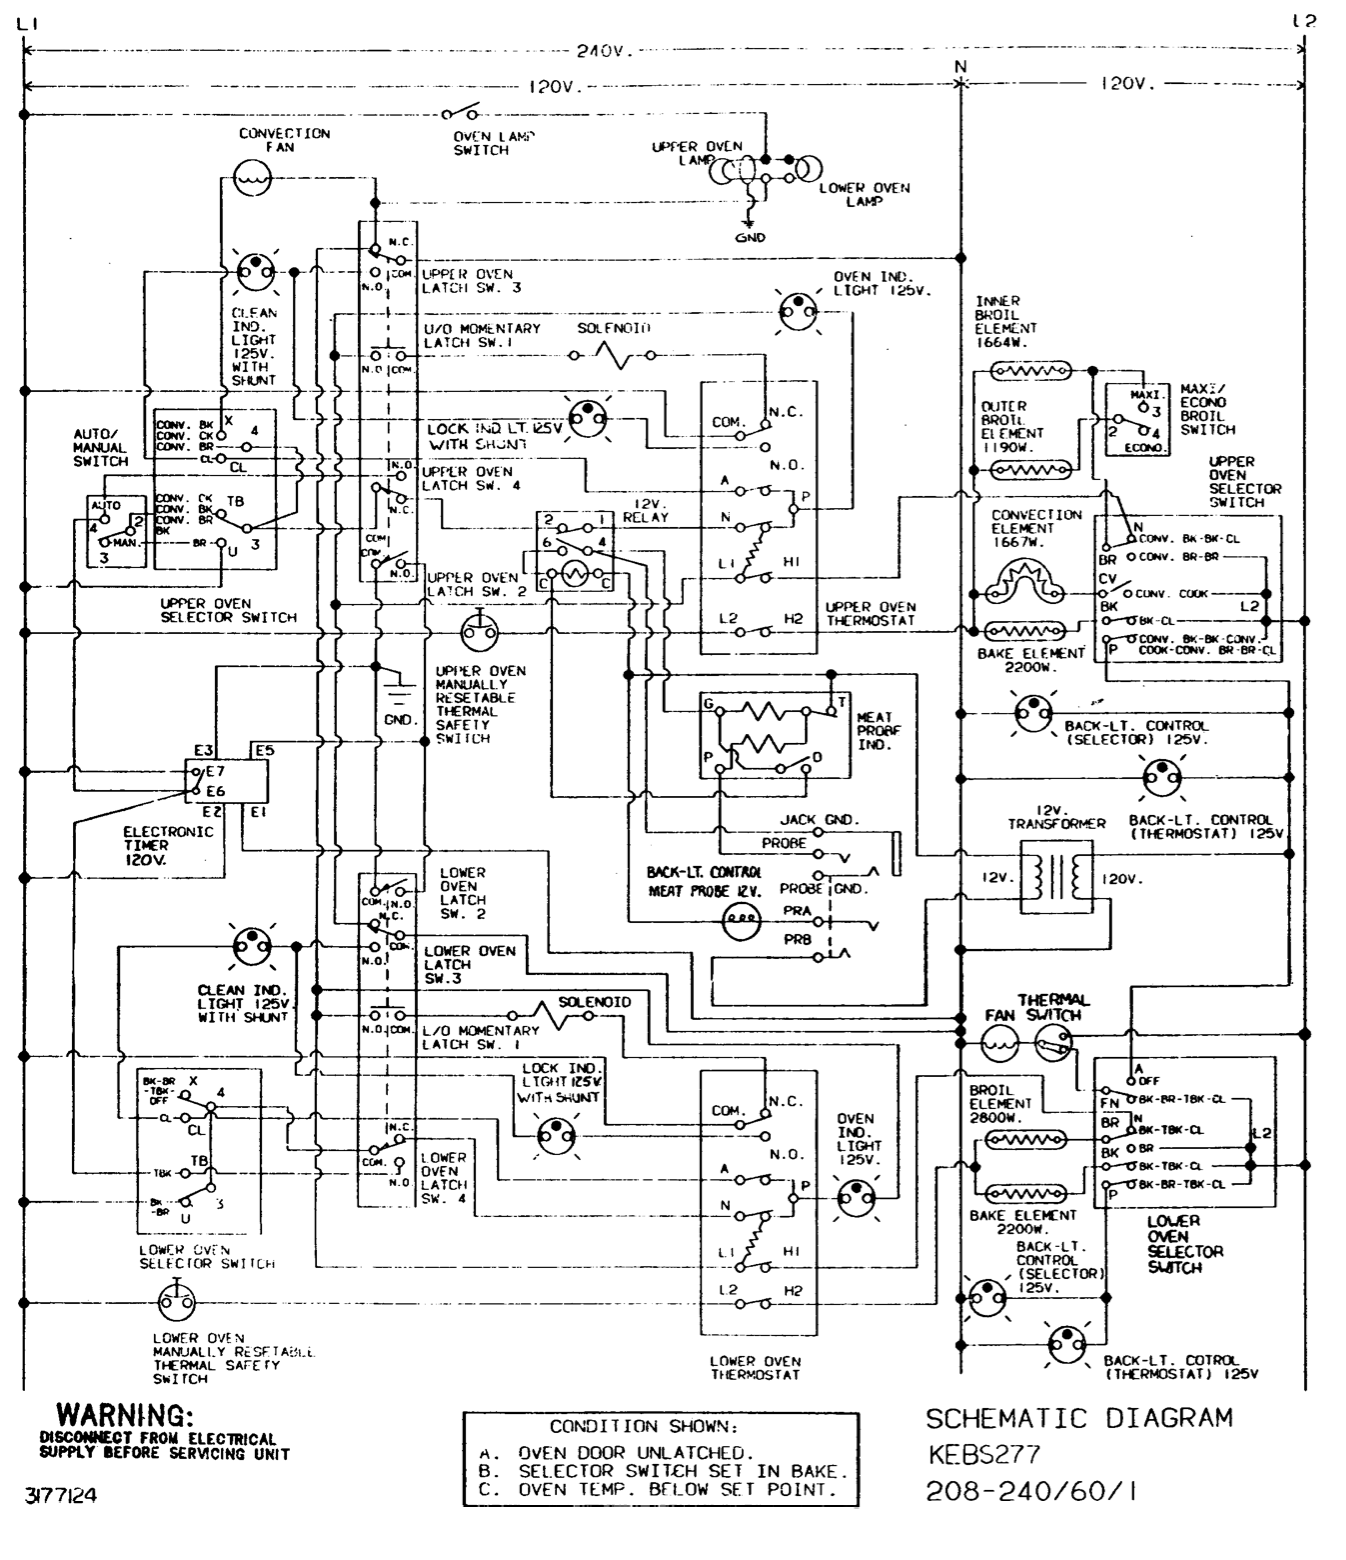 2012 12 17_154533_screen_shot_2012 12 17_at_8.43.53_am kitchenaid wiring diagram kitchenaid washing machine diagram kitchenaid dishwasher wiring diagram at edmiracle.co